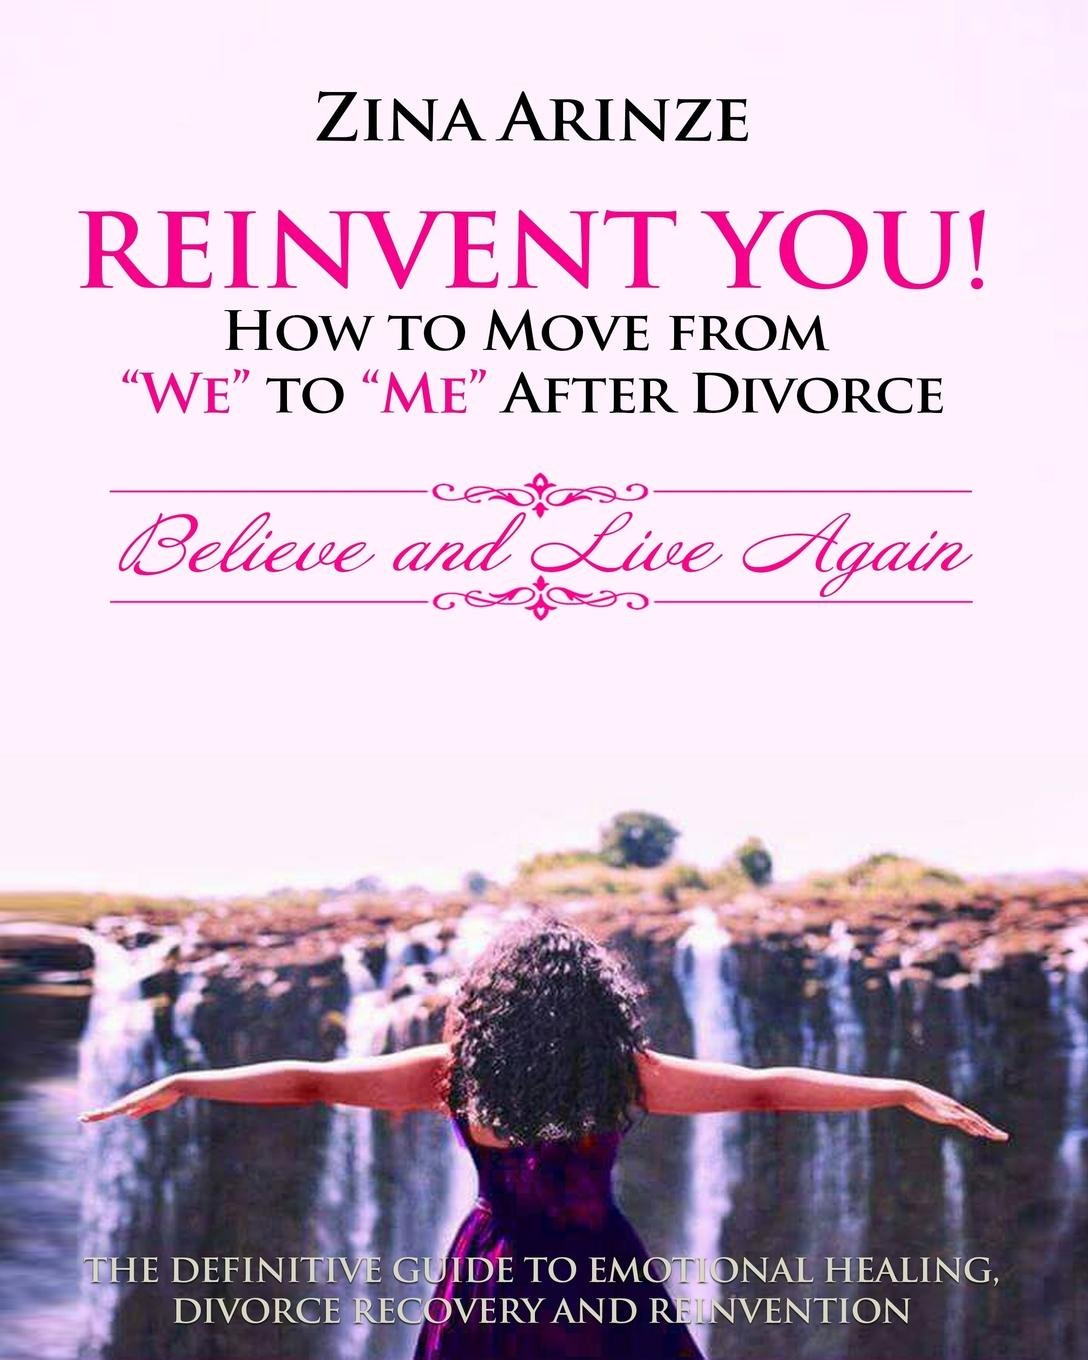 Reinvent You How To Move From We To Me After Divorce Believe And Live Again Arinze Zina 9780995568808 Amazon Com Books They should have lived separately for a minimum of 6 months on the day of filing the petition. arinze zina 9780995568808